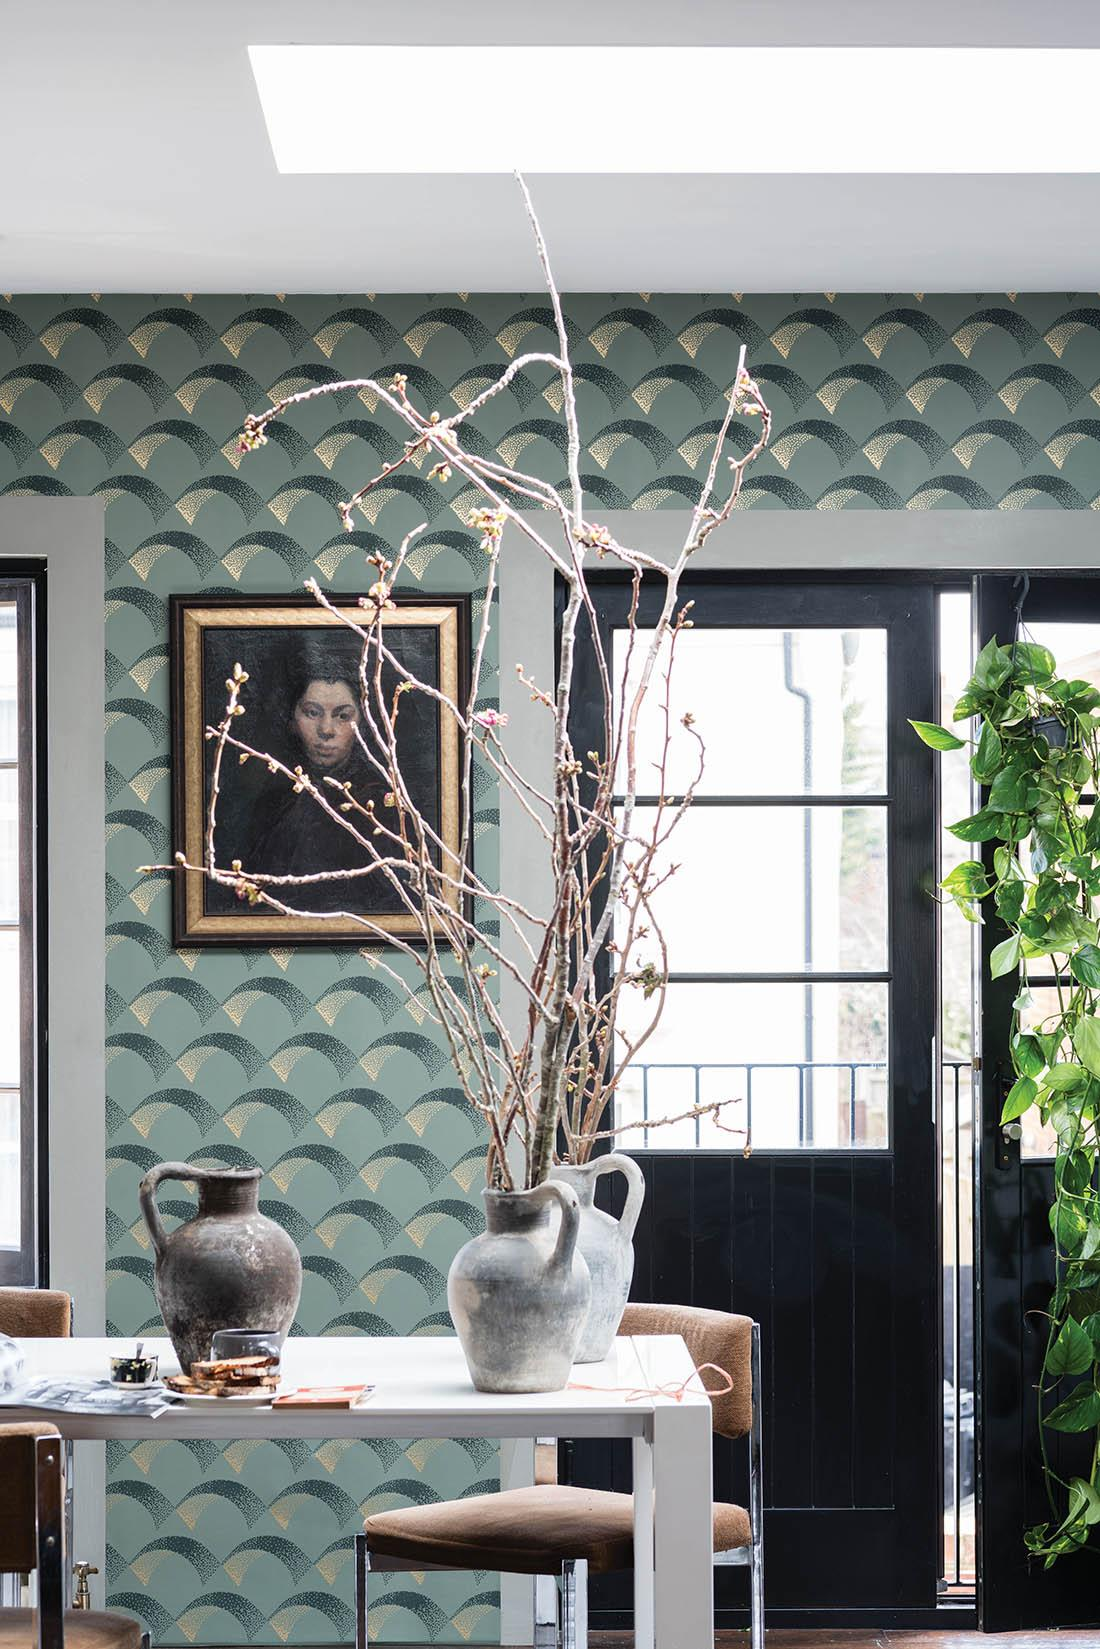 Tapete von Farrow & Ball #wandgestaltung #mustertapete #farrow&ball ©Farrow & Ball